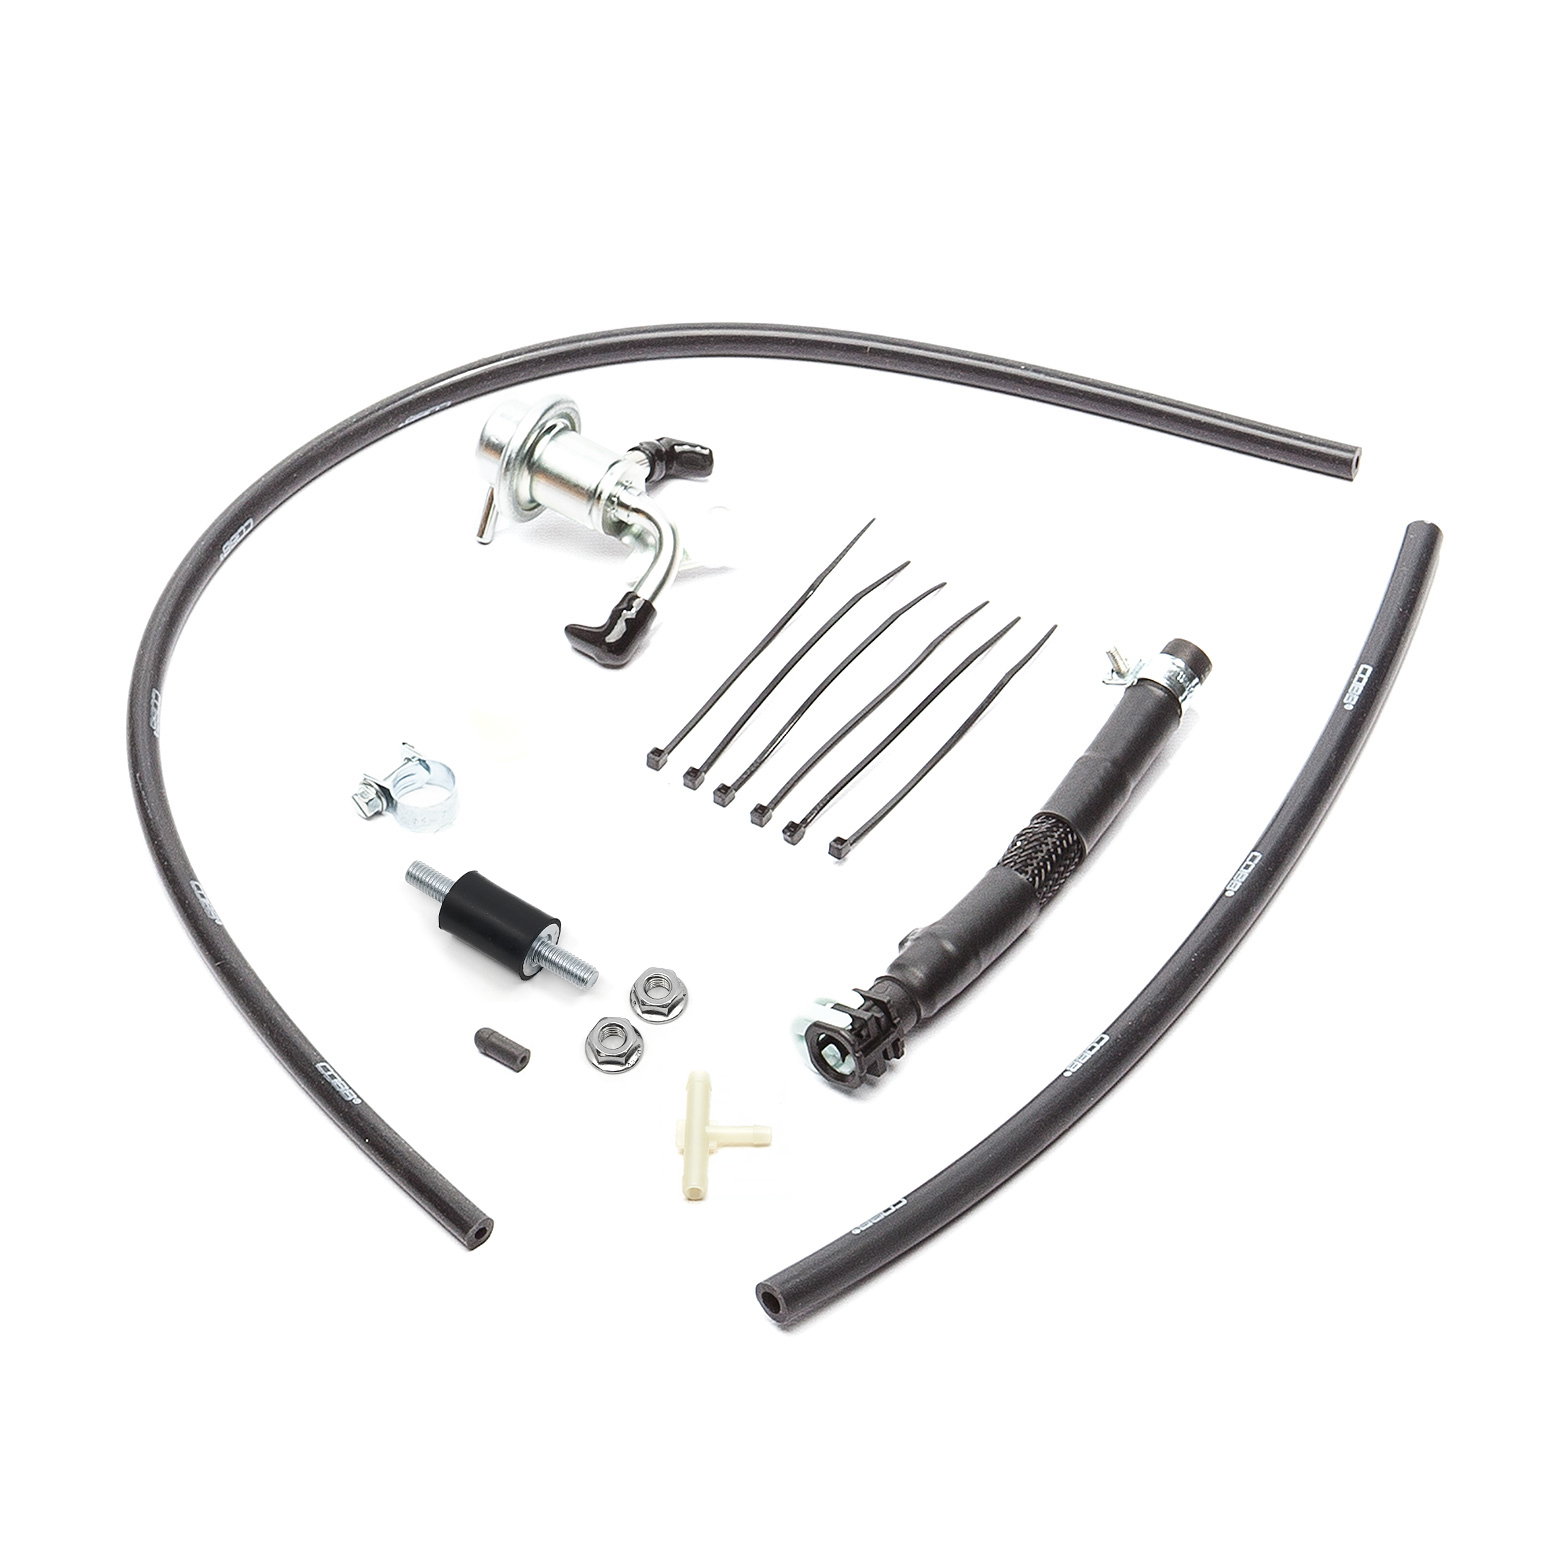 Subaru Stage 3 + Flex Fuel Power Package STI Sedan 2011-2014